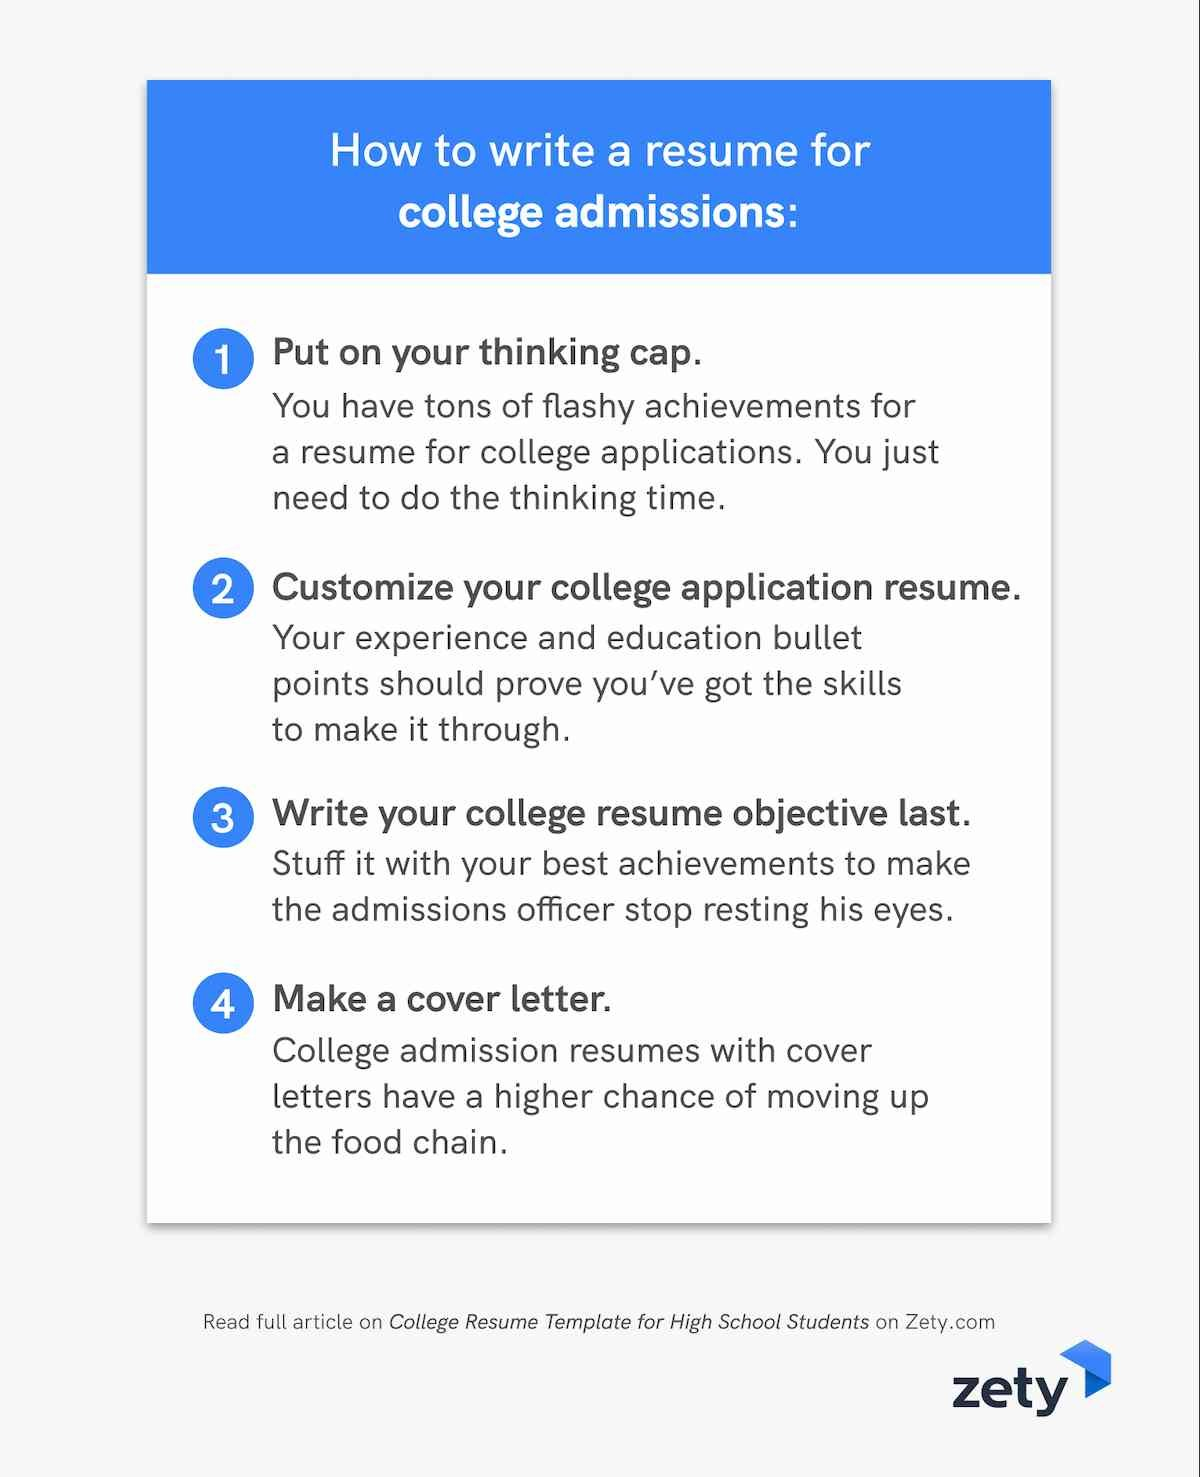 How to write a resume for college admissions